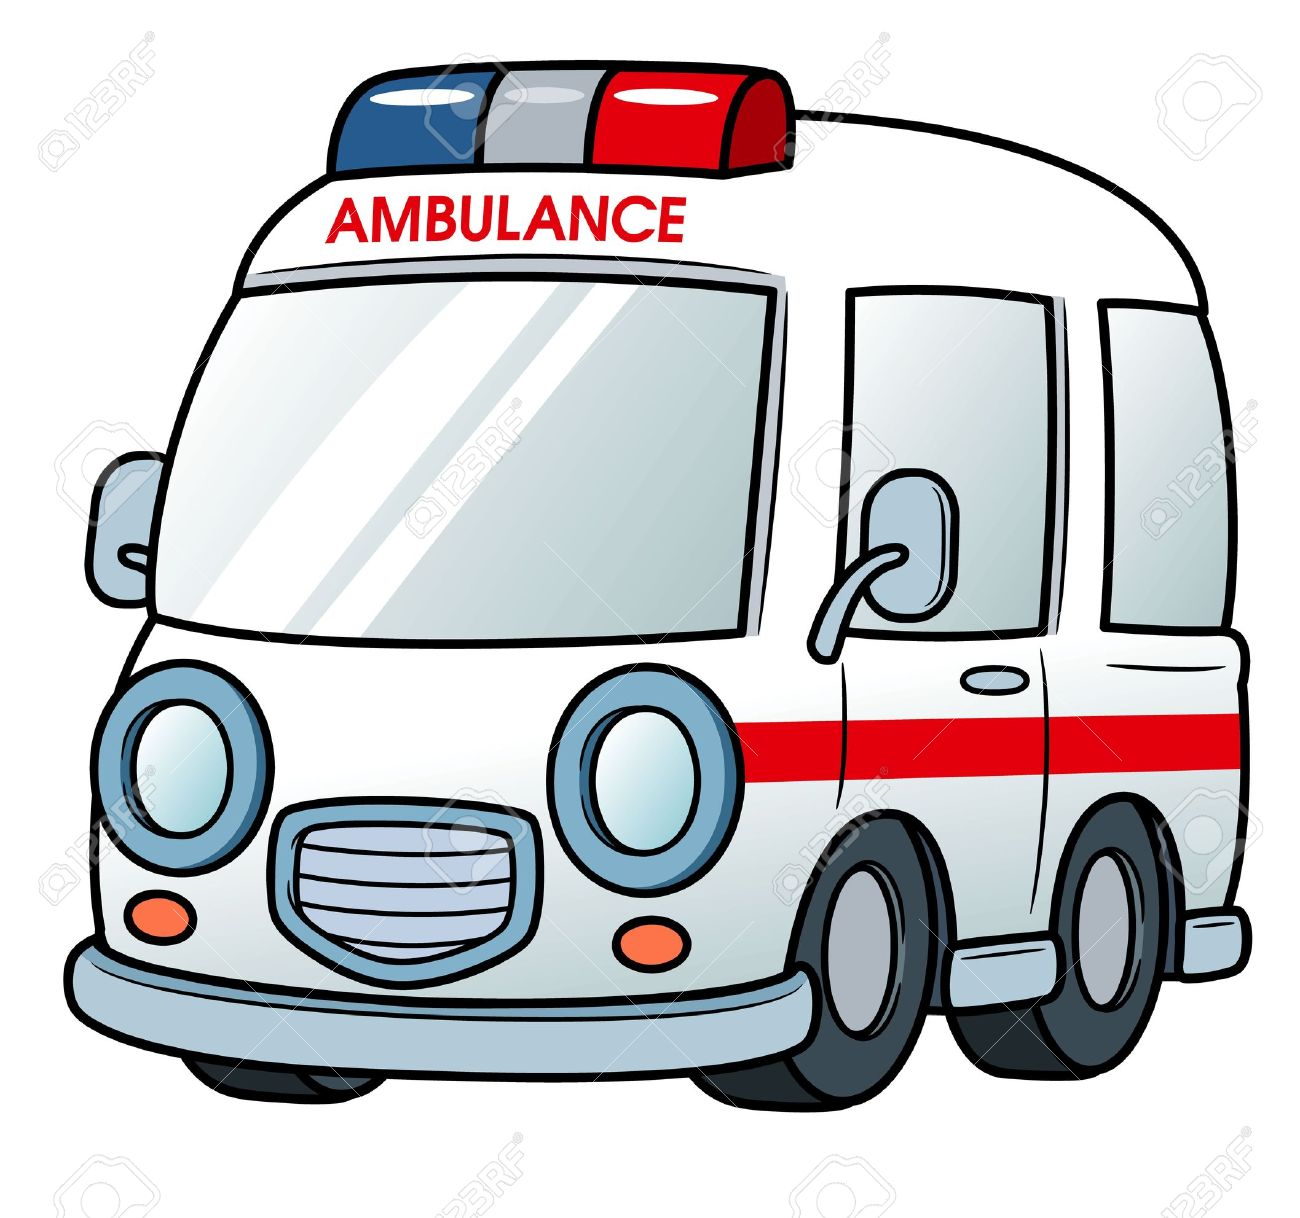 Cartoon pictures free download. Ambulance clipart animated